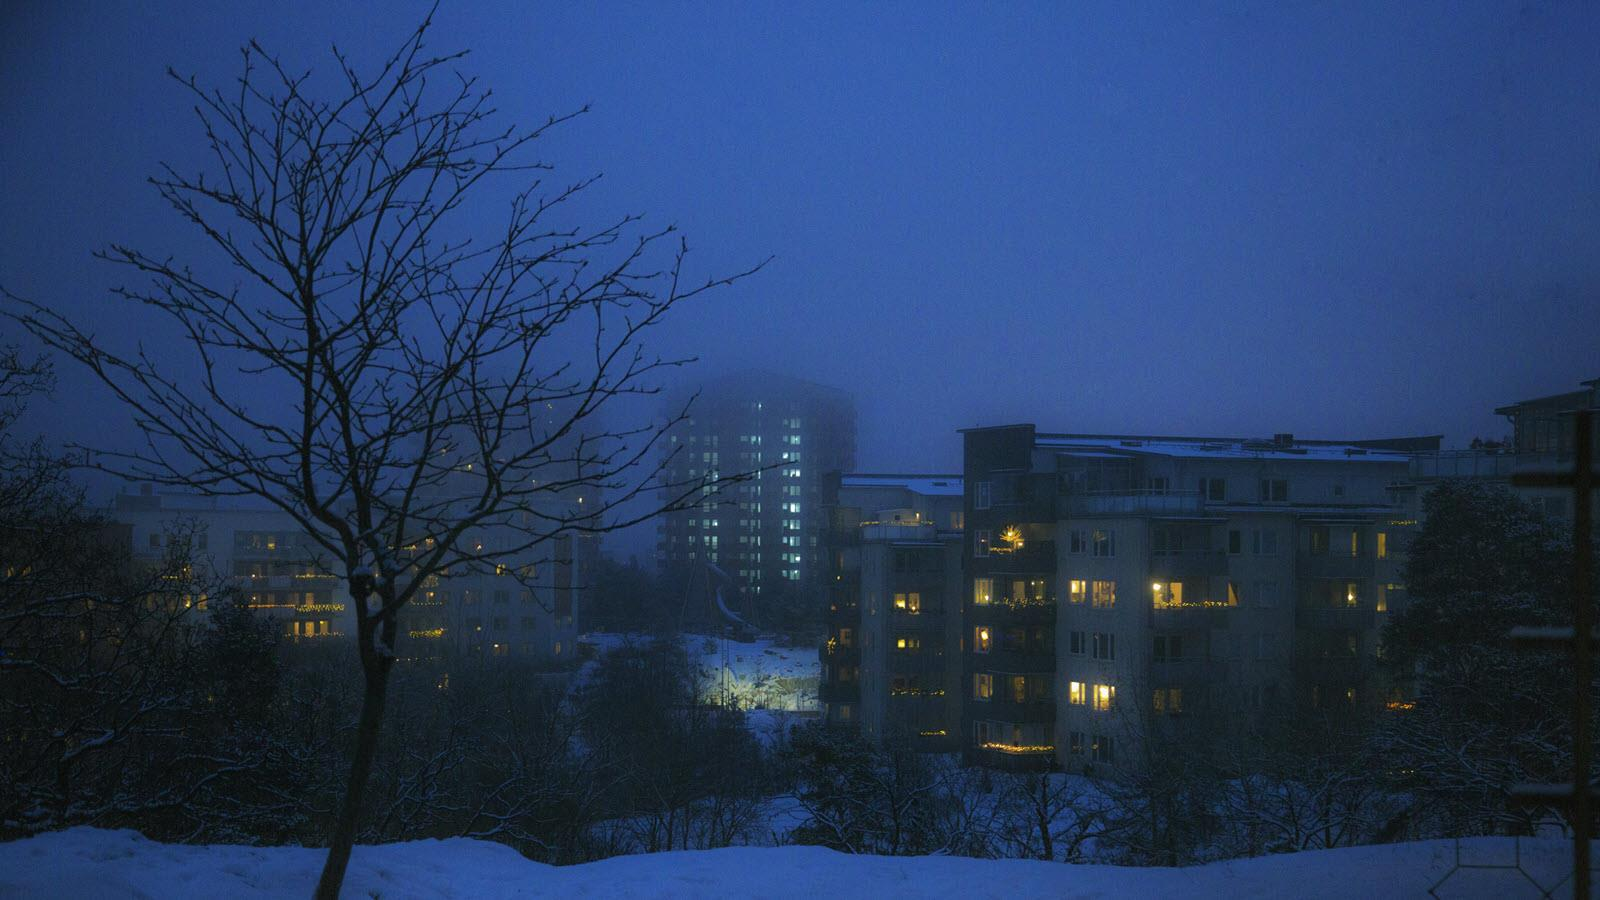 dark winter afternoon with lights glowing in an apartment building